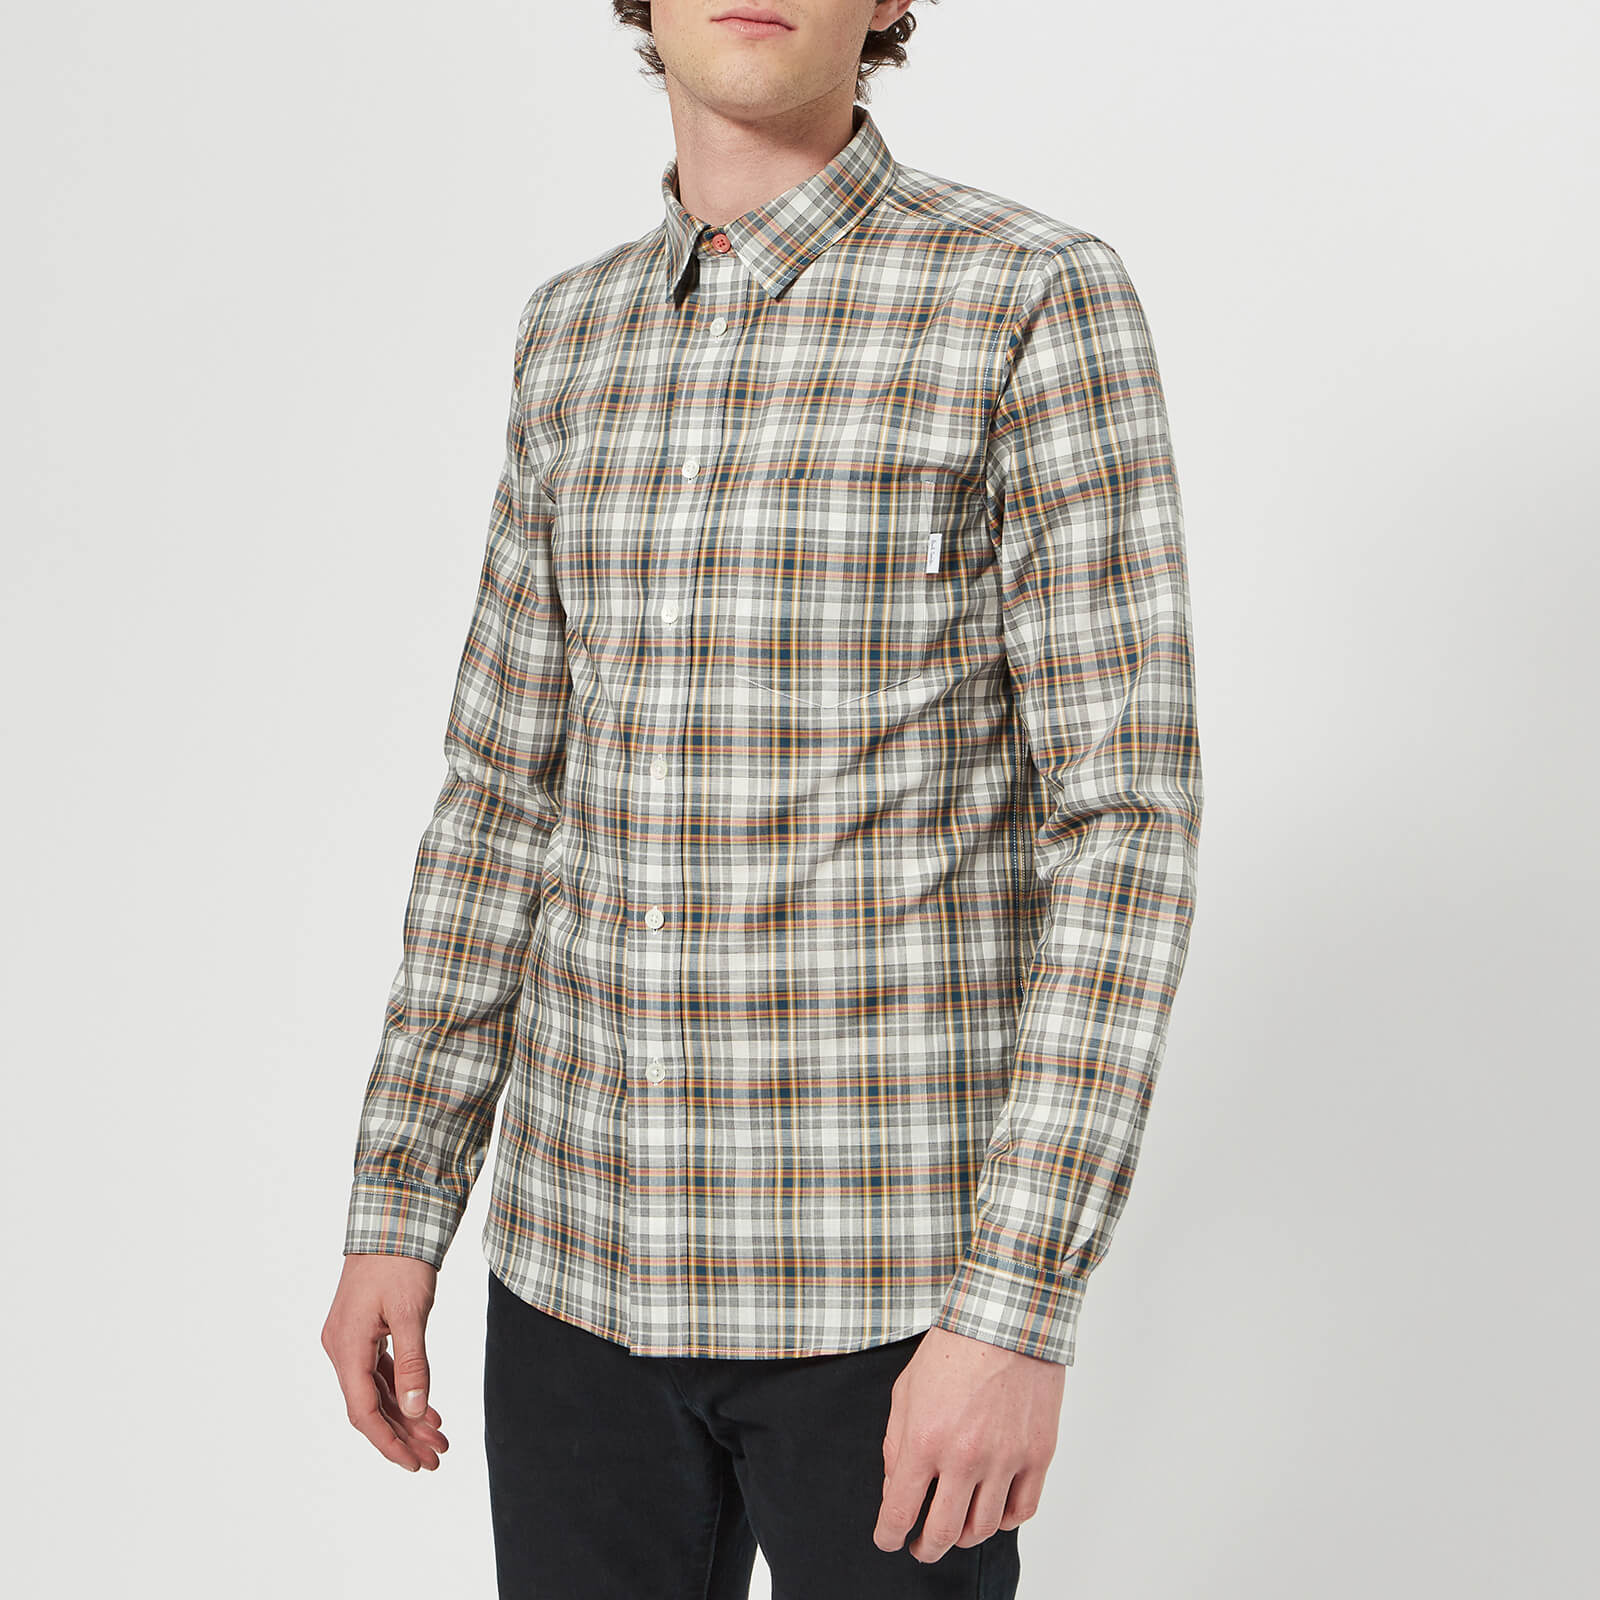 be6c541e5ef4d9 PS Paul Smith Men's Slim Fit Long Sleeve Check Shirt - Grey Melange - Free  UK Delivery over £50